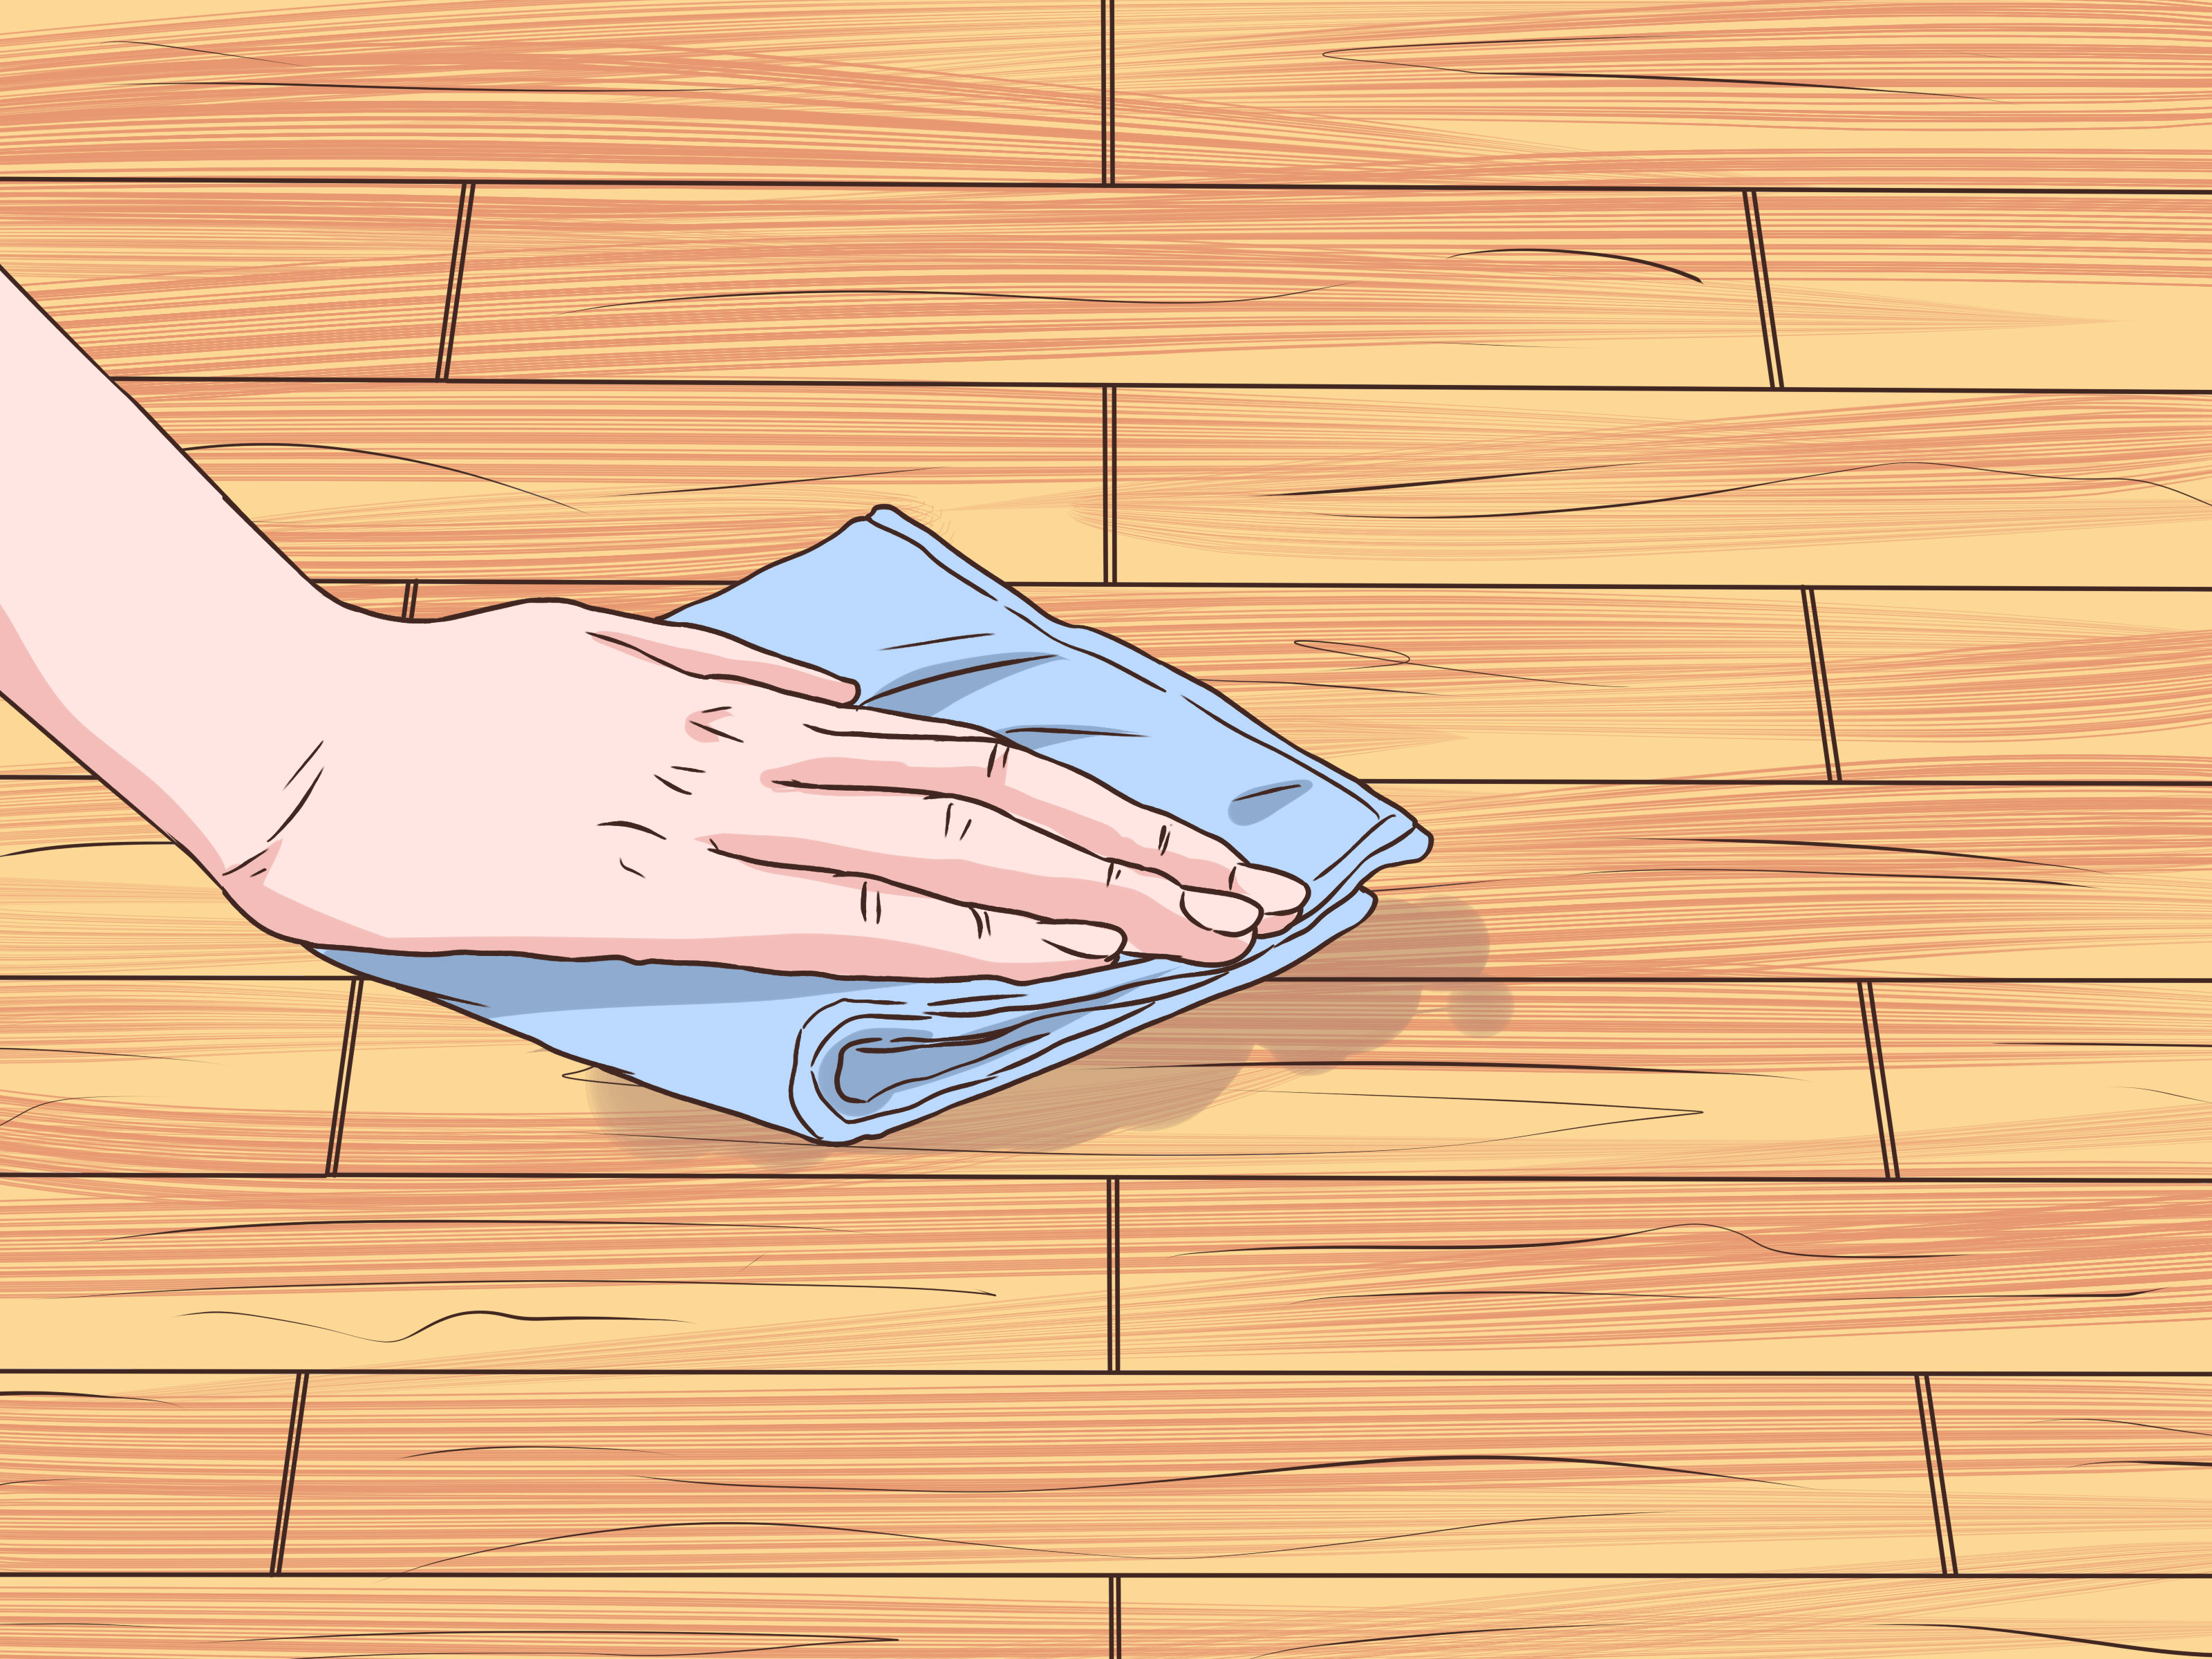 best hardwood floor finish for pets of how to clean sticky hardwood floors 9 steps with pictures regarding clean sticky hardwood floors step 9